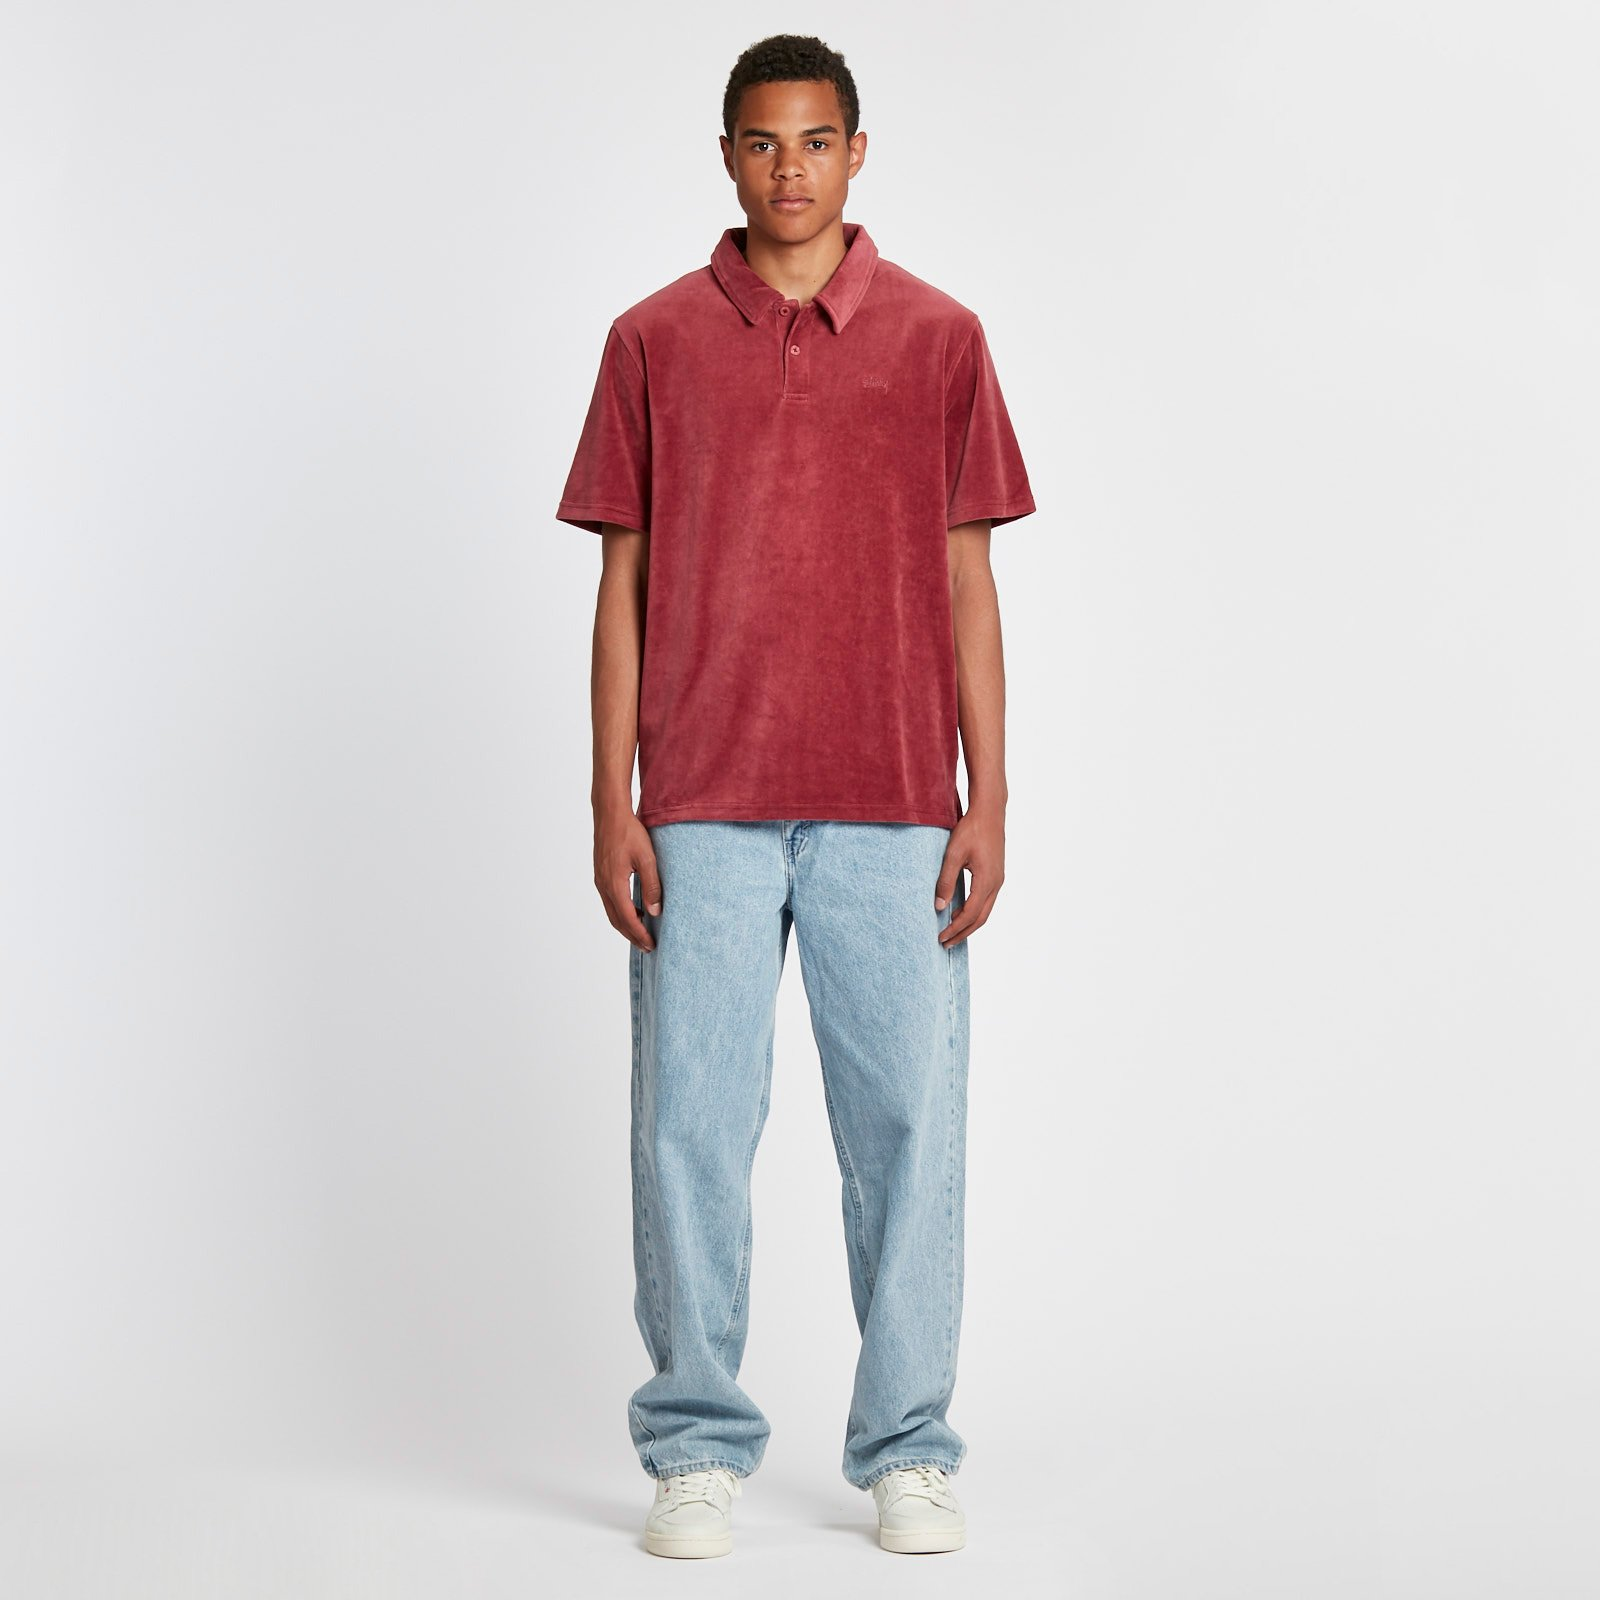 1834a509f3 Stussy Victor Polo - 1140075-1017 - Sneakersnstuff | sneakers ...